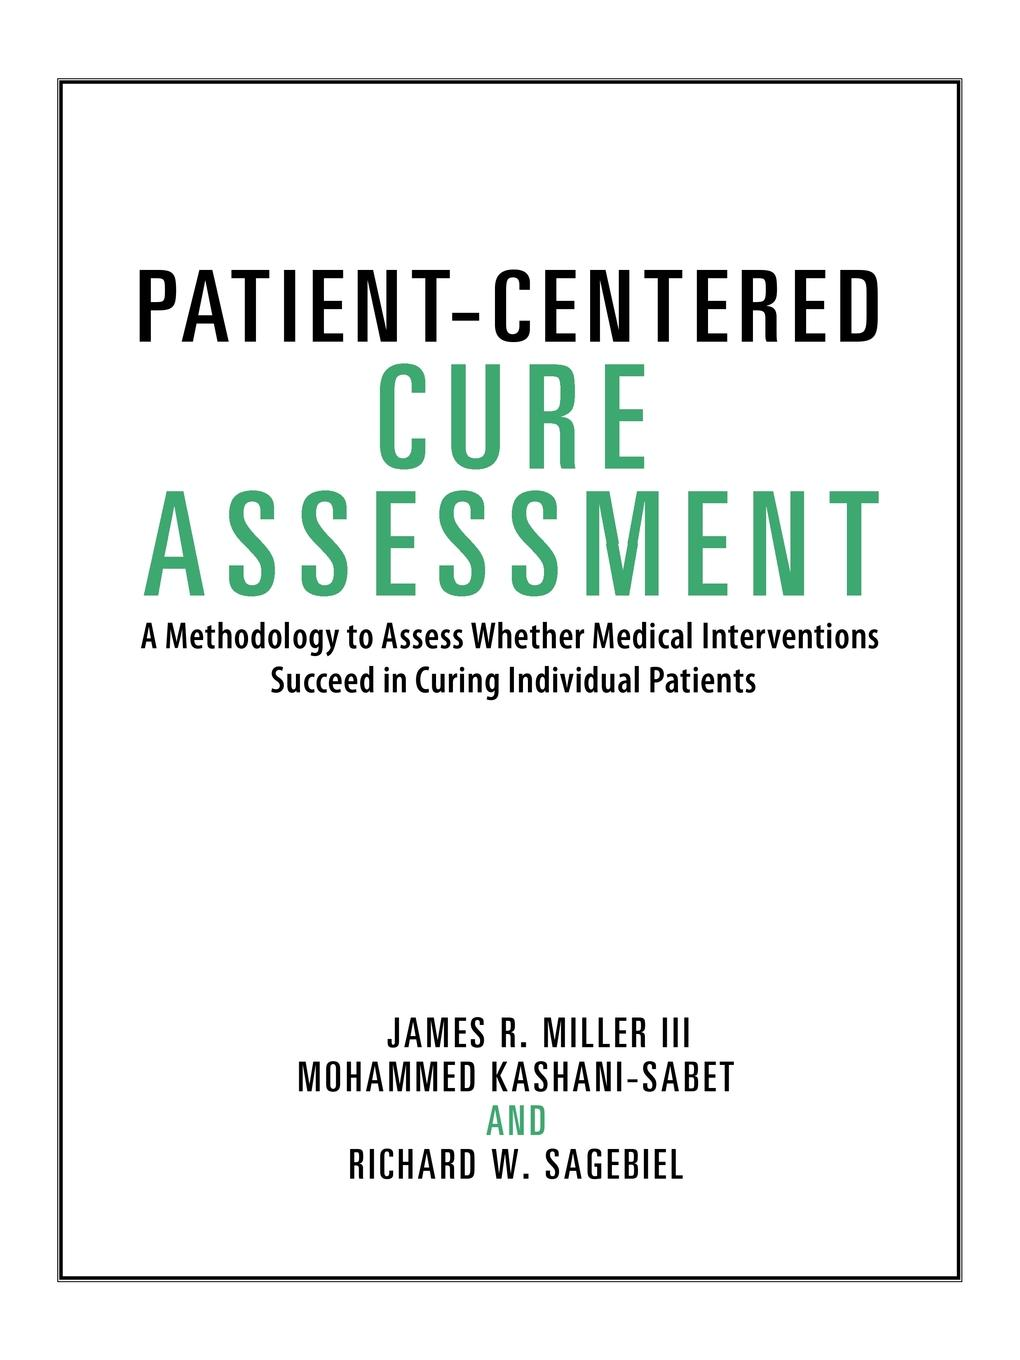 лучшая цена Miller, Kashani-Sabet, Sagebiel Patient-Centered Cure Assessment. A Methodology to Assess Whether Medical Interventions Succeed in Curing Individual Patients